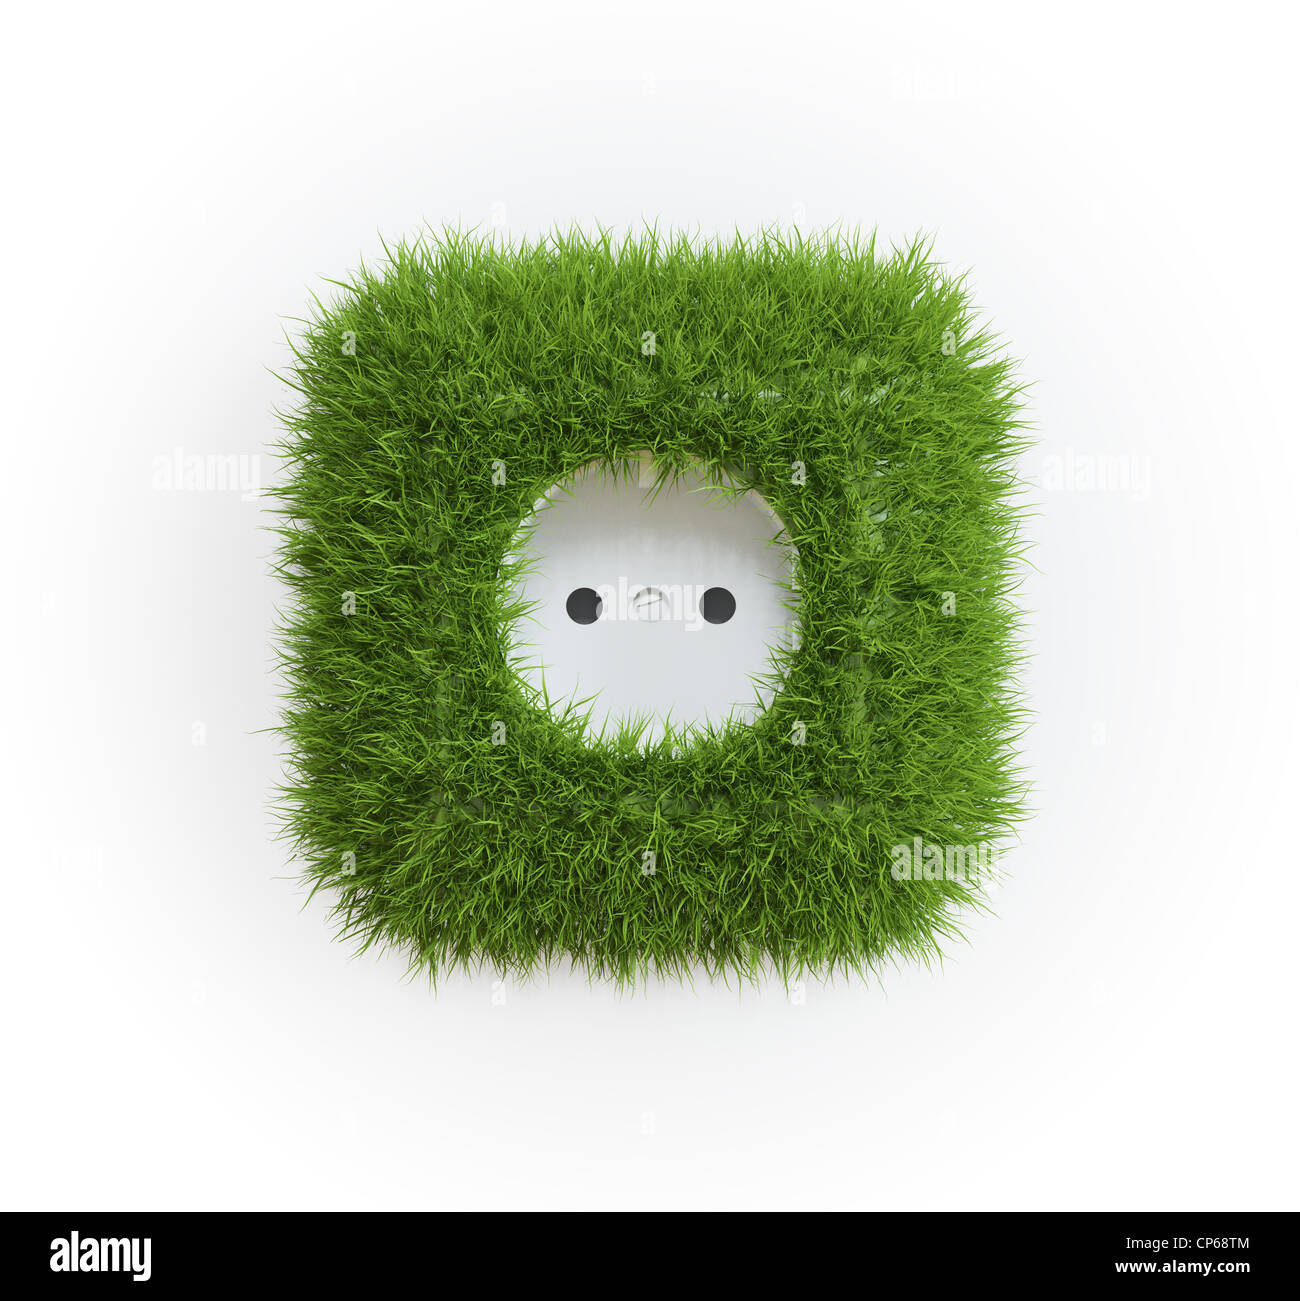 Grass covered outlet - renewable energy concept - Stock Image